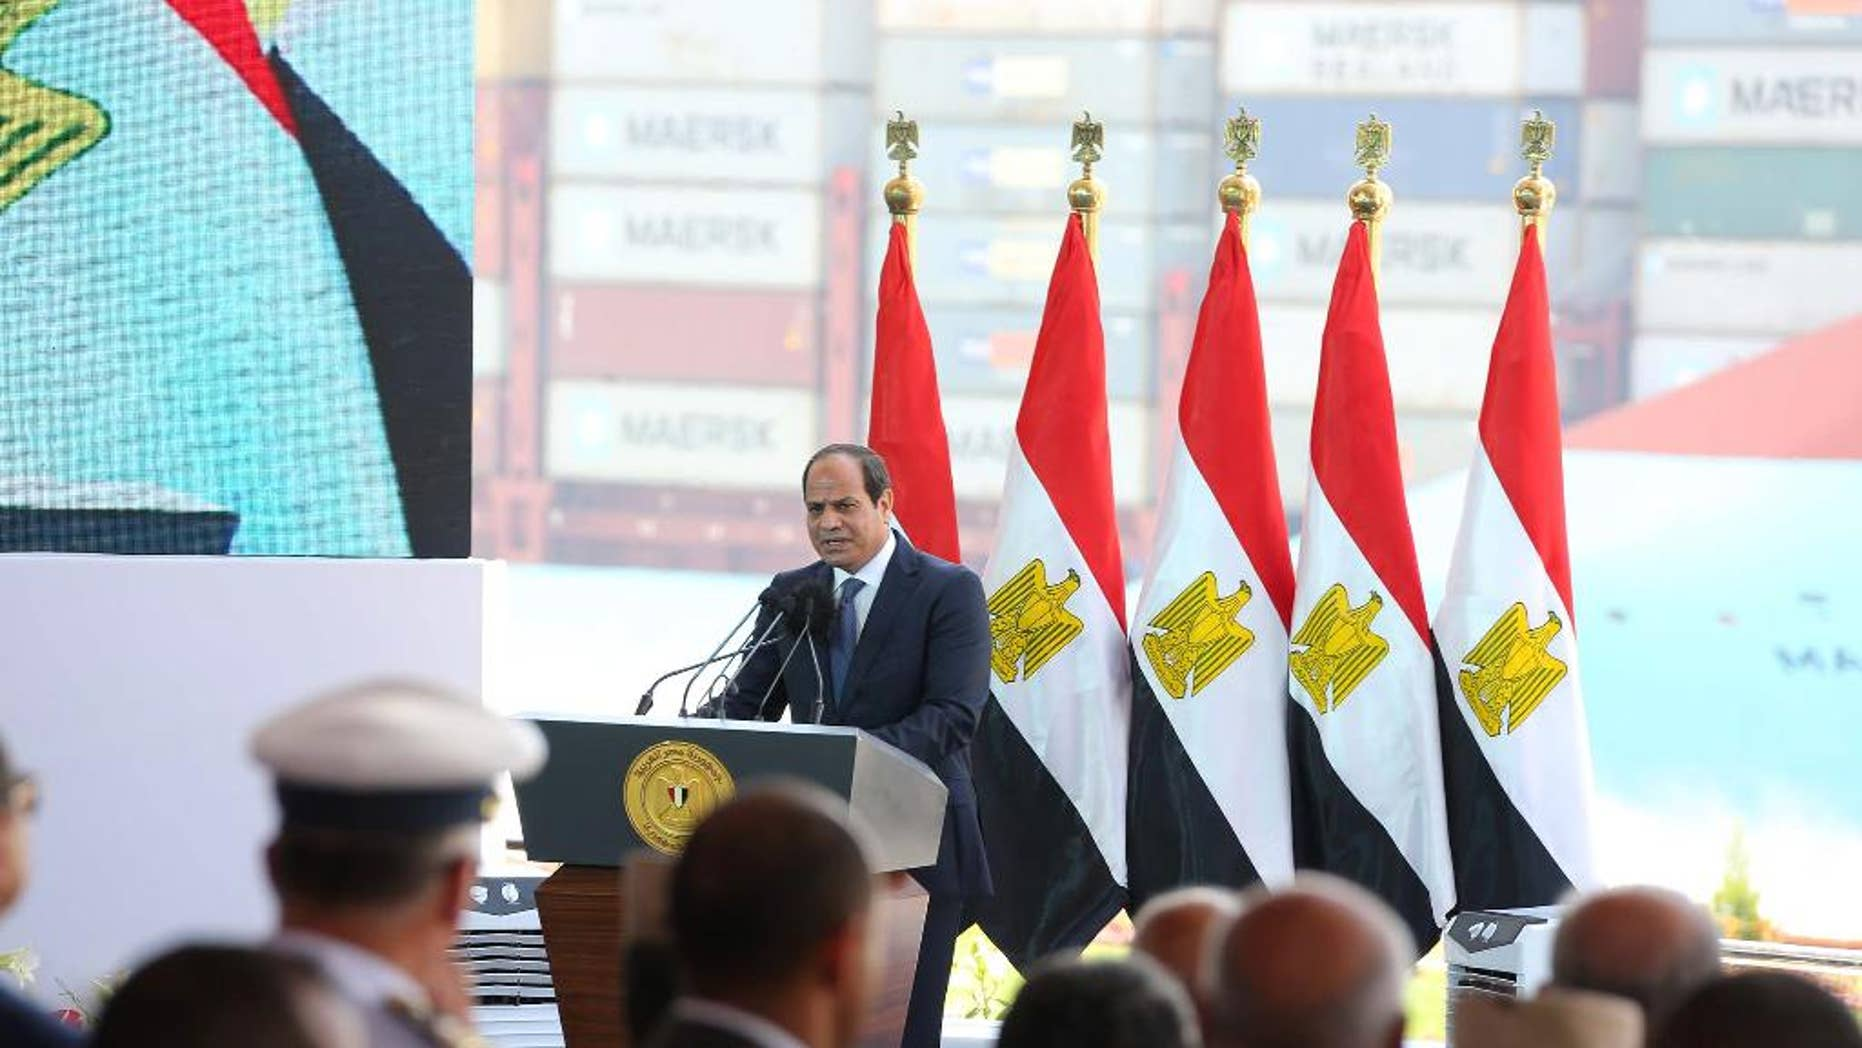 In this photo provided by Egypt's state news agency MENA, Egyptian President Abdel-Fattah el-Sissi, gives a speech marking the first anniversary the first anniversary of the inauguration of an expansion of the Suez Canal, in Suez, Egypt, Saturday, Aug. 6, 2016. Egypt's president has defiantly dismissed criticism of his handling of the country's ailing economy, arguing that the skeptics were seeking to undermine the will of Egyptians. (MENA via AP)